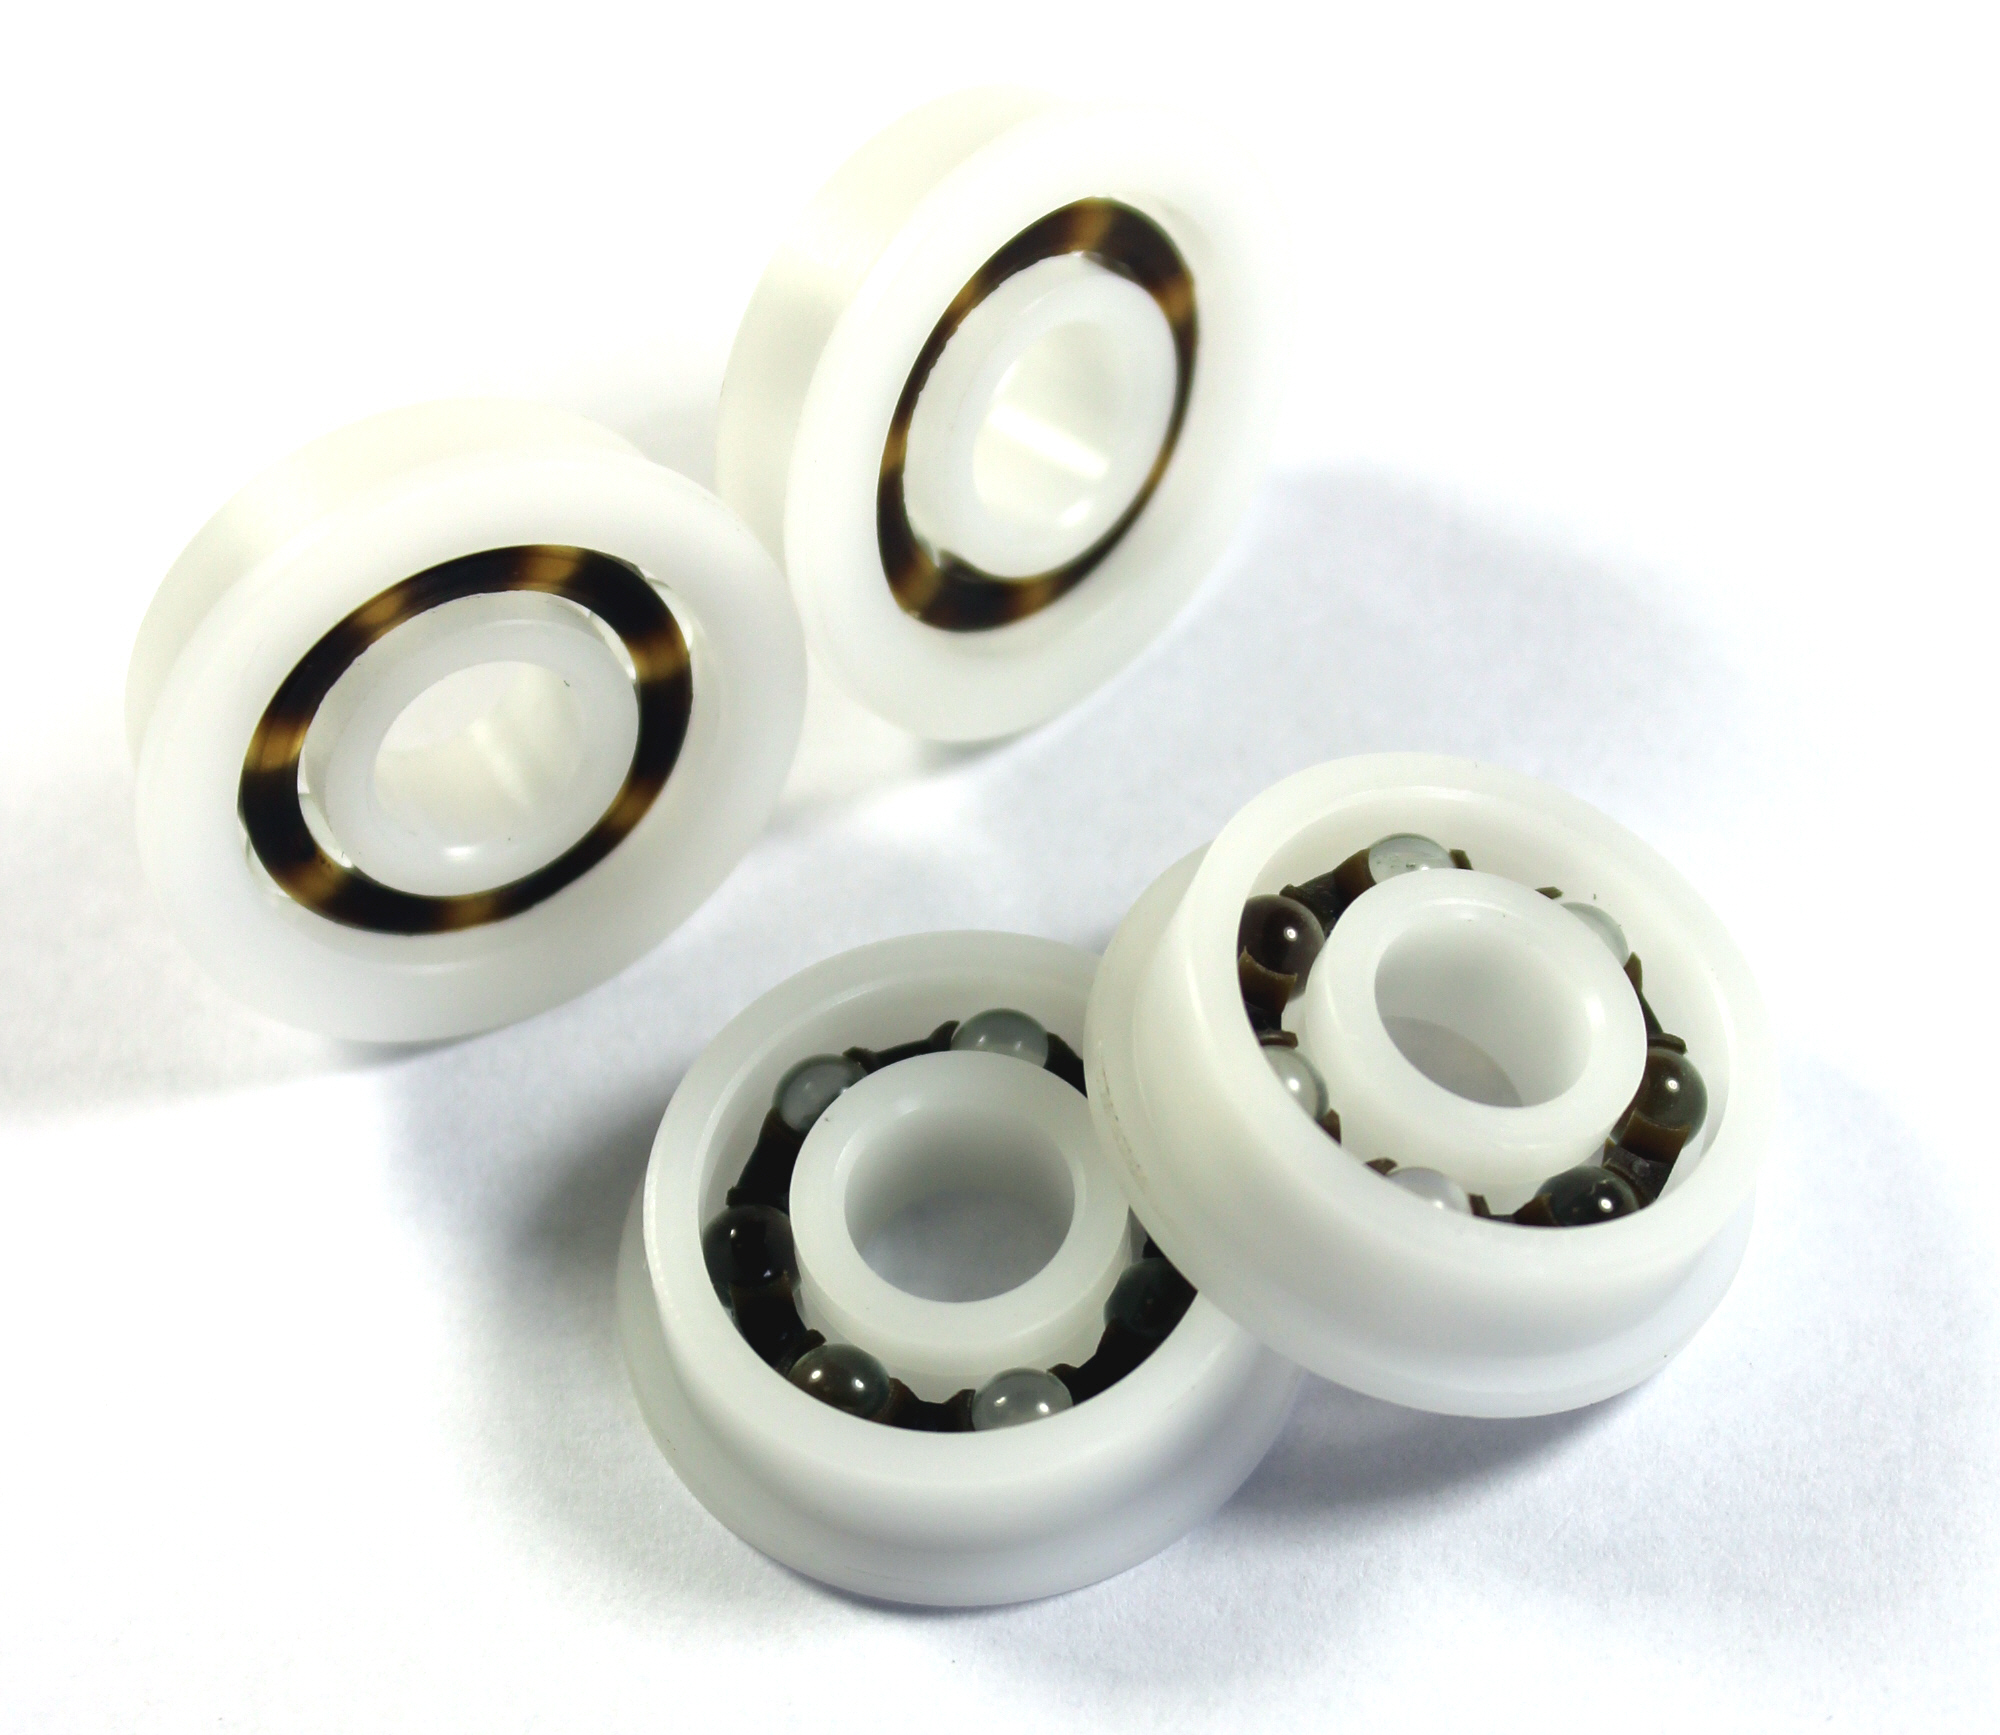 Plastic ball bearings are most commonly stocked with acetal resin (POM) rings and nylon (PA66) cages. The balls are norm